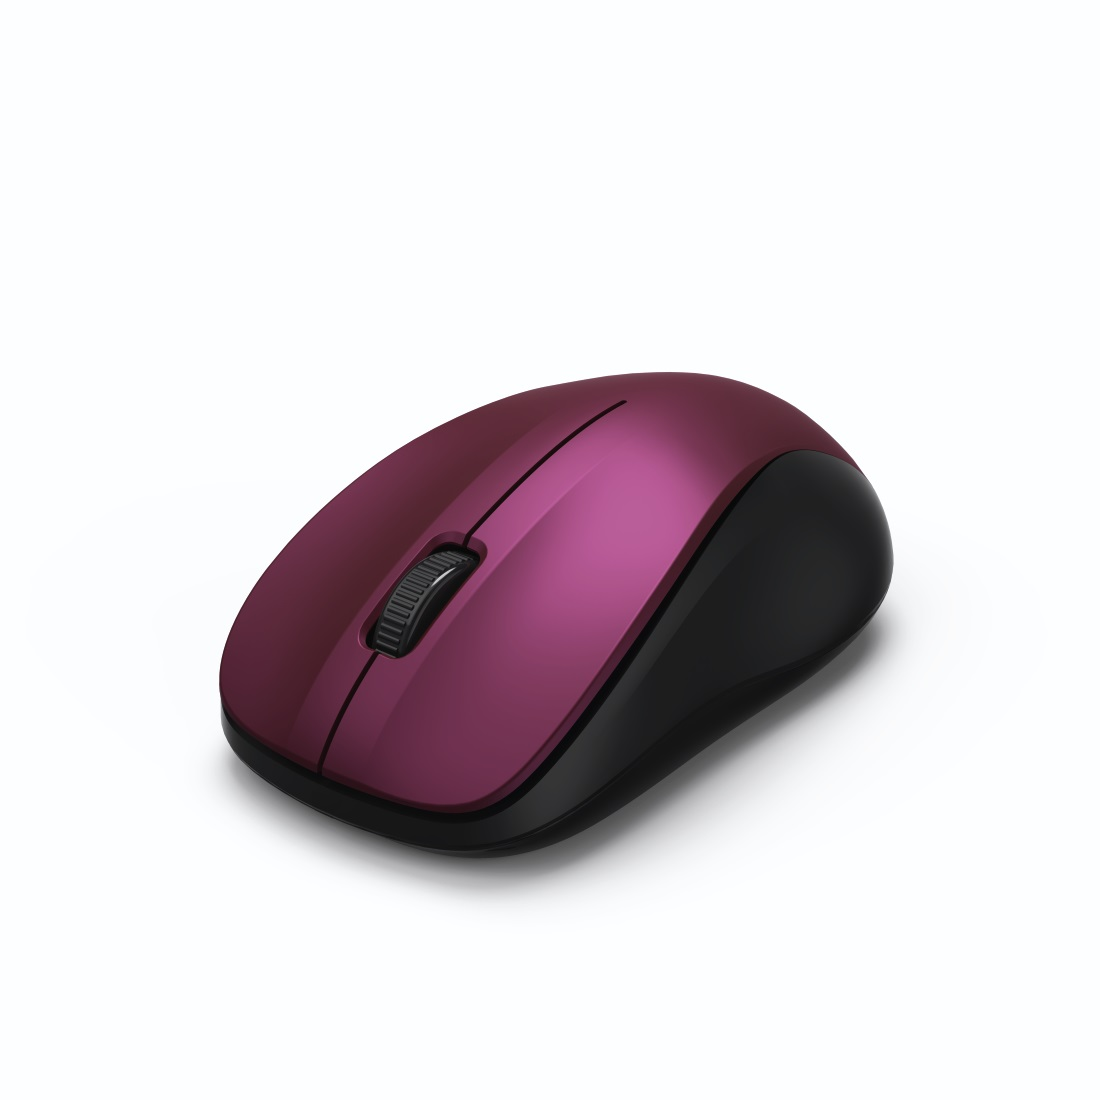 HAMA MW-300 Optical Wireless Mouse 3 Buttons bordeaux pink